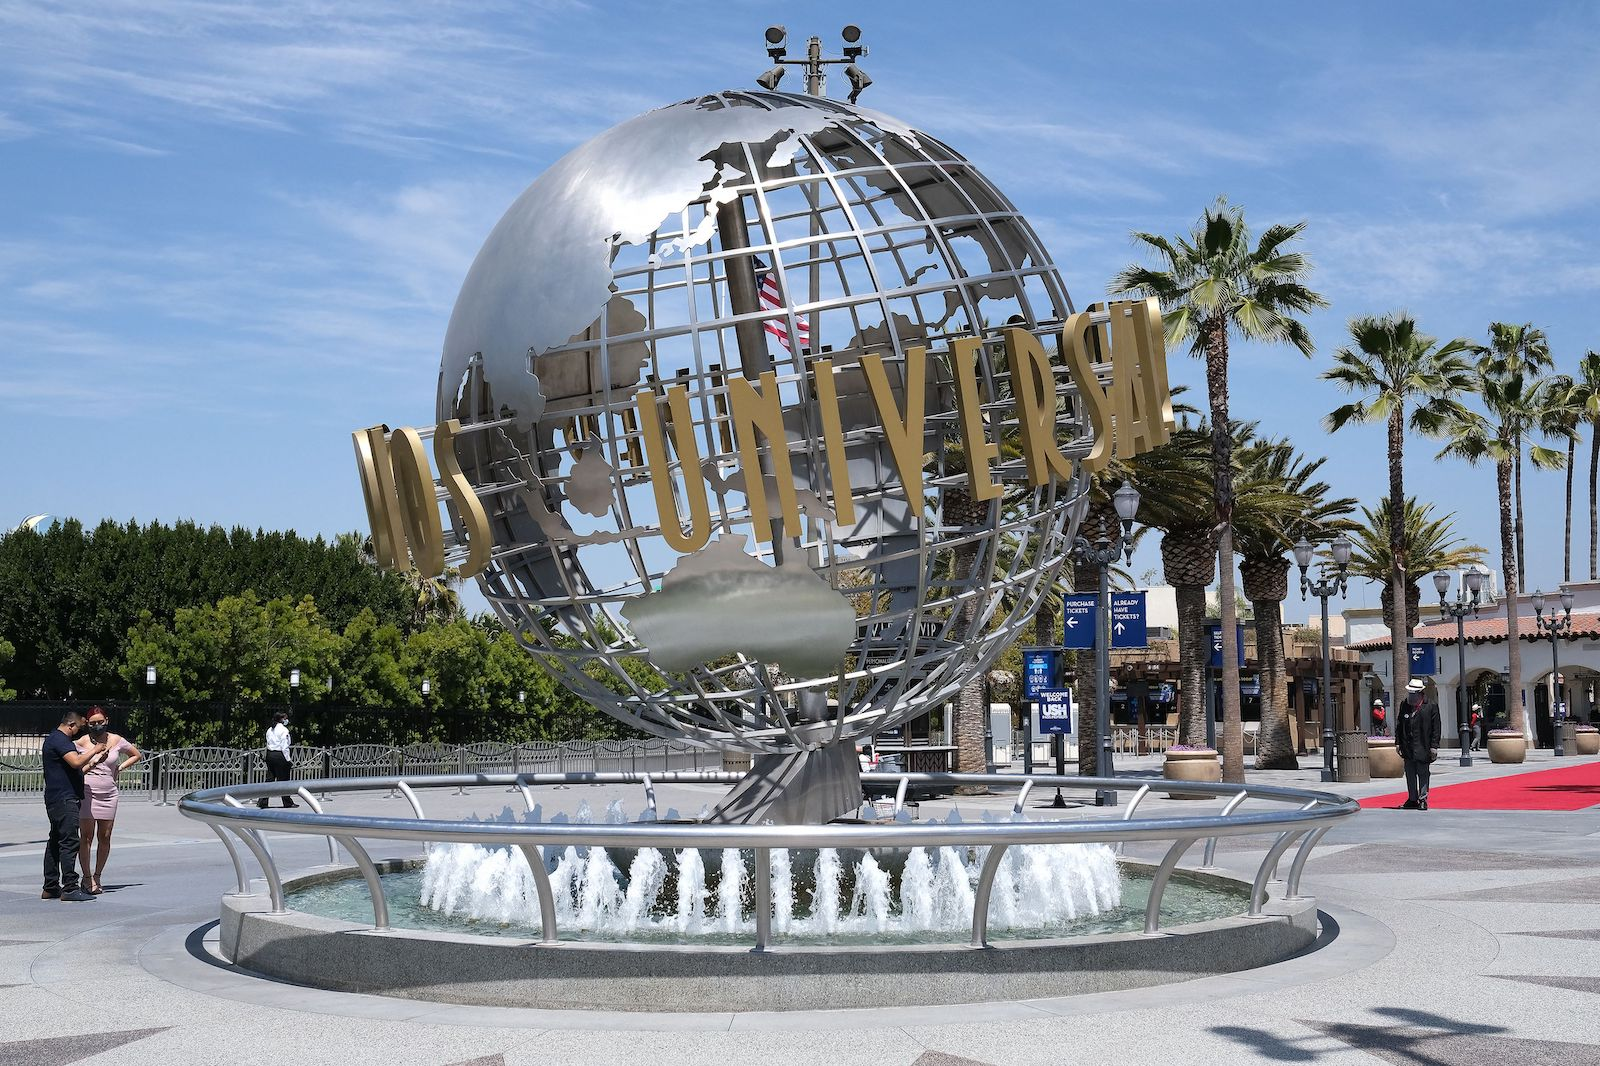 The Universal Studios globe fountain is pictured as season pass holders attend to the opening day in Los Angeles, California, on April 15, 2021. - Universal Studios Hollywood will reopen on April 16 following more than a year of closures due to the Covid-19 pandemic. Annual and season passholders can return to the park on select dates during special preview Bonus Days running, April 15 through May 16. (Photo by LISA O'CONNOR / AFP) (Photo by LISA O'CONNOR/AFP via Getty Images)